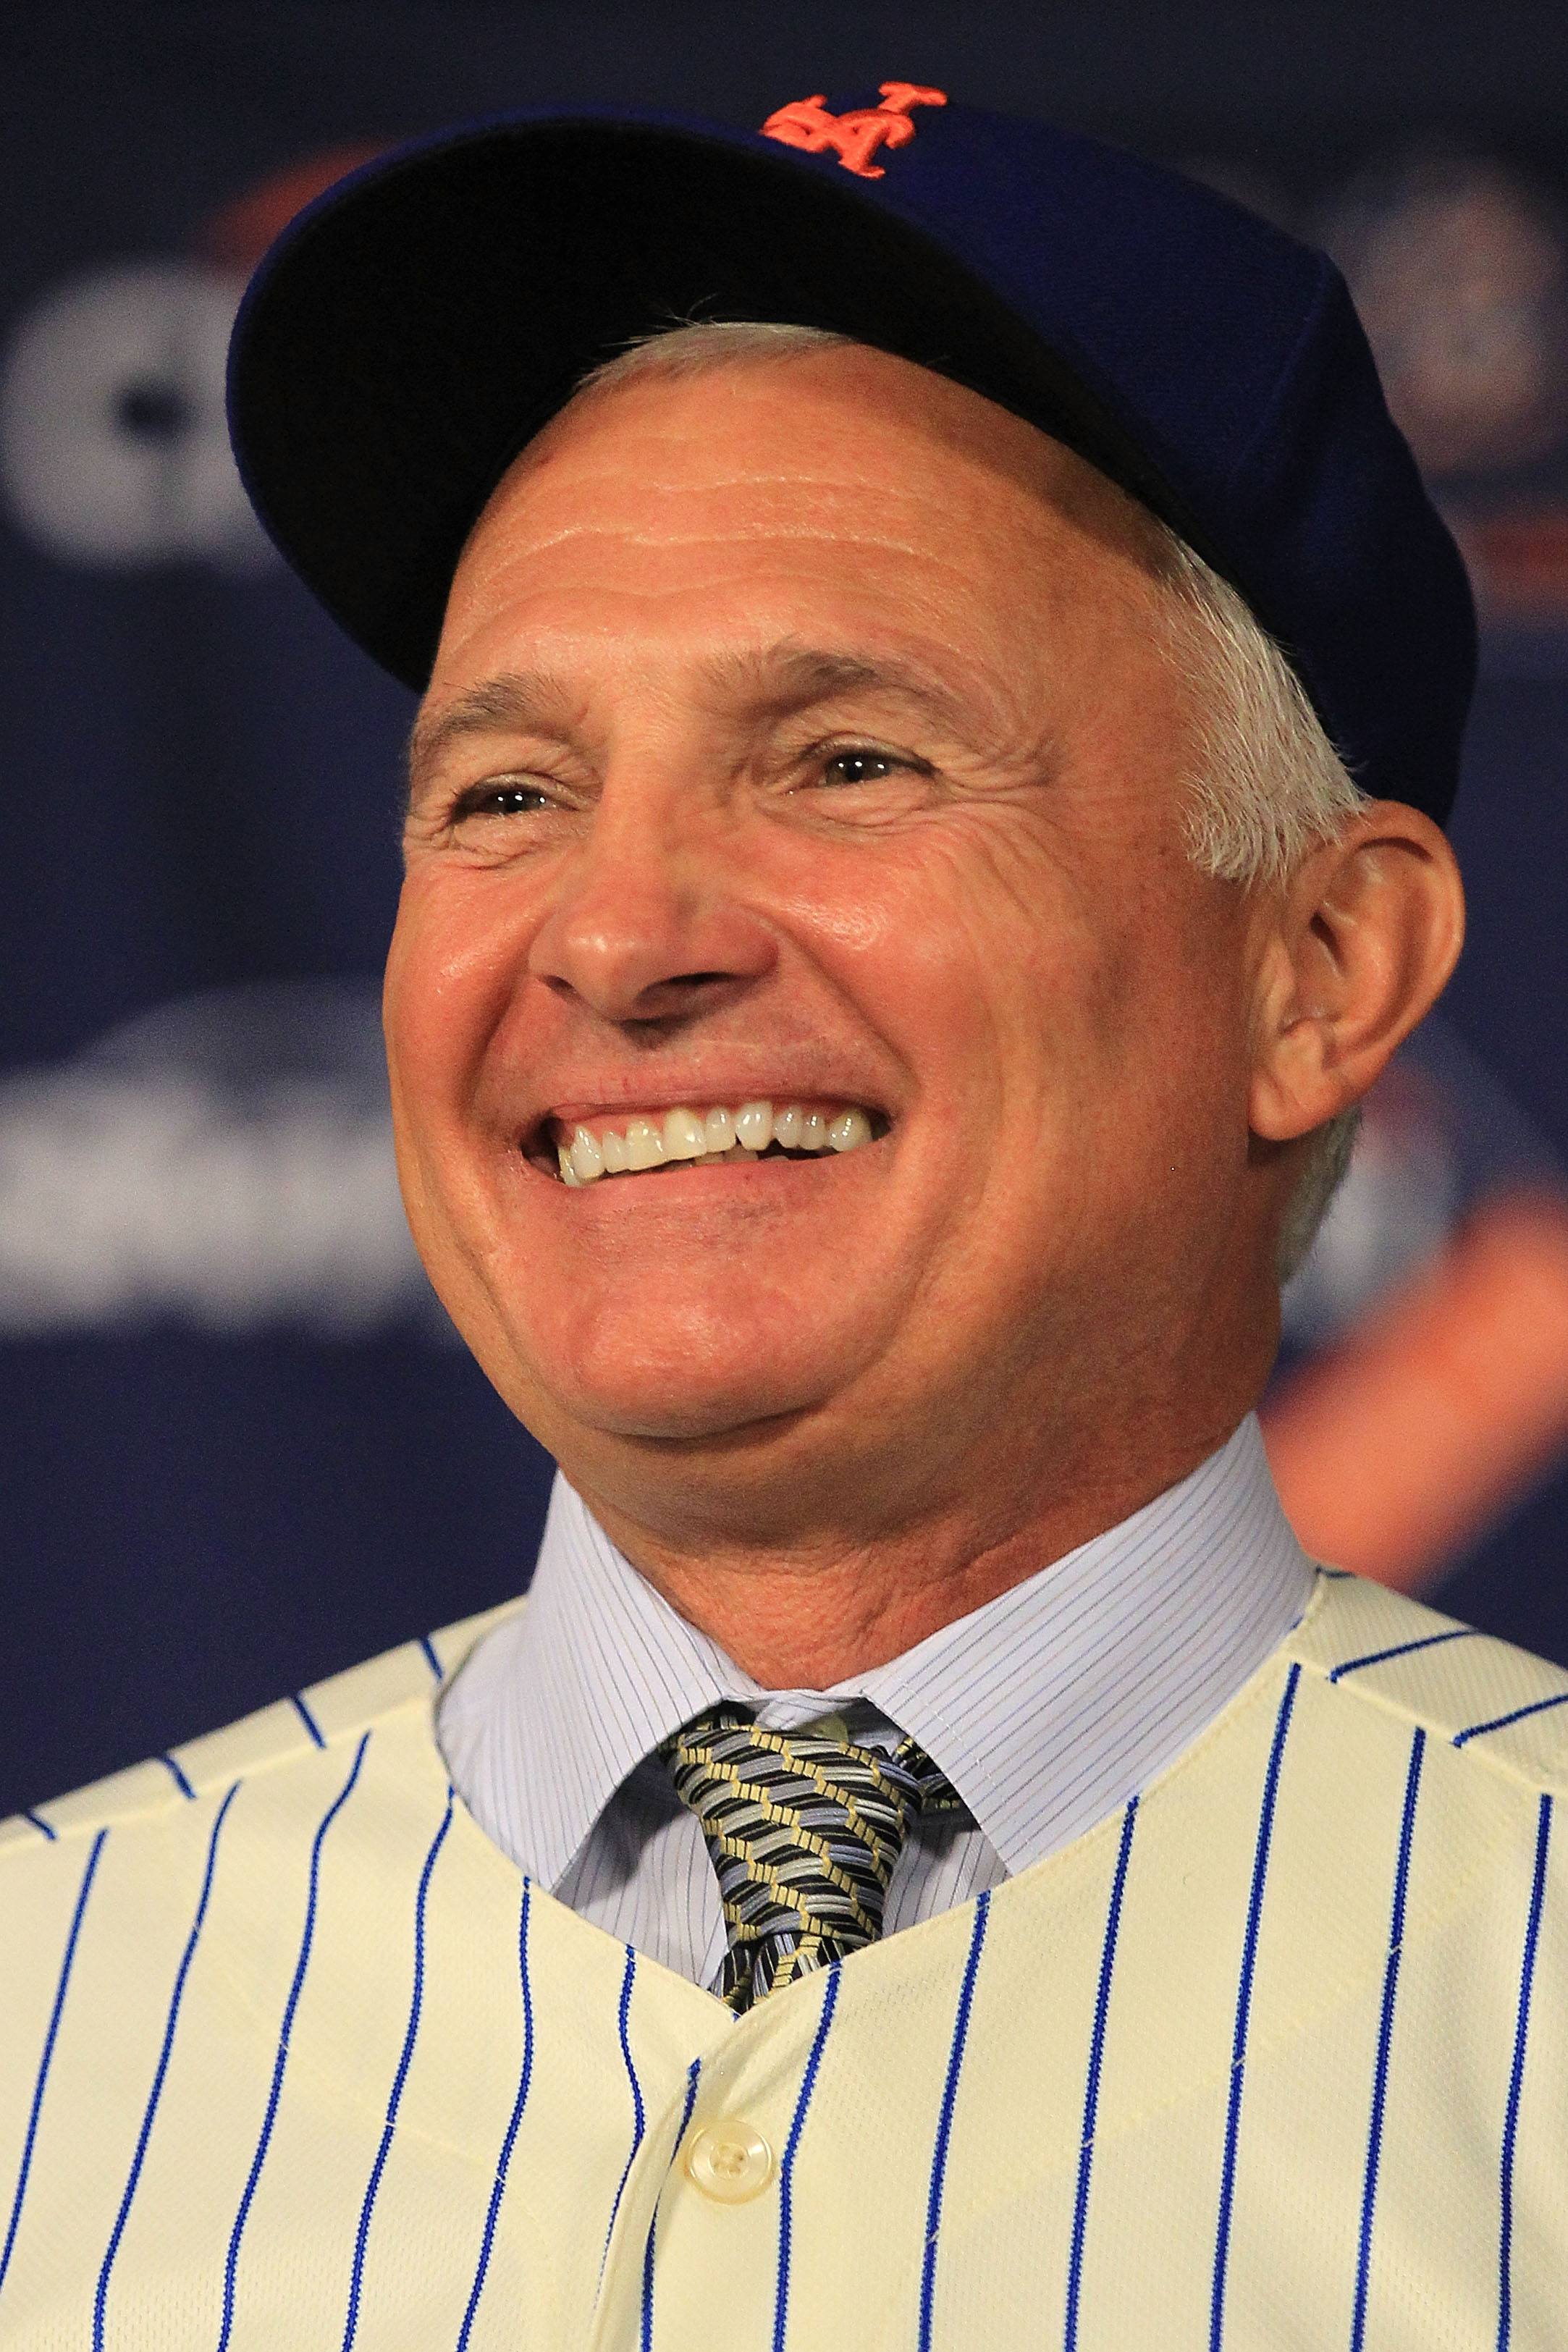 NEW YORK - NOVEMBER 23:  New York Mets new manager Terry Collins speaks to the media during a press conference  at Citi Field on November 23, 2010 in the Flushing neighborhood, of the Queens borough of New York City.  (Photo by Chris McGrath/Getty Images)